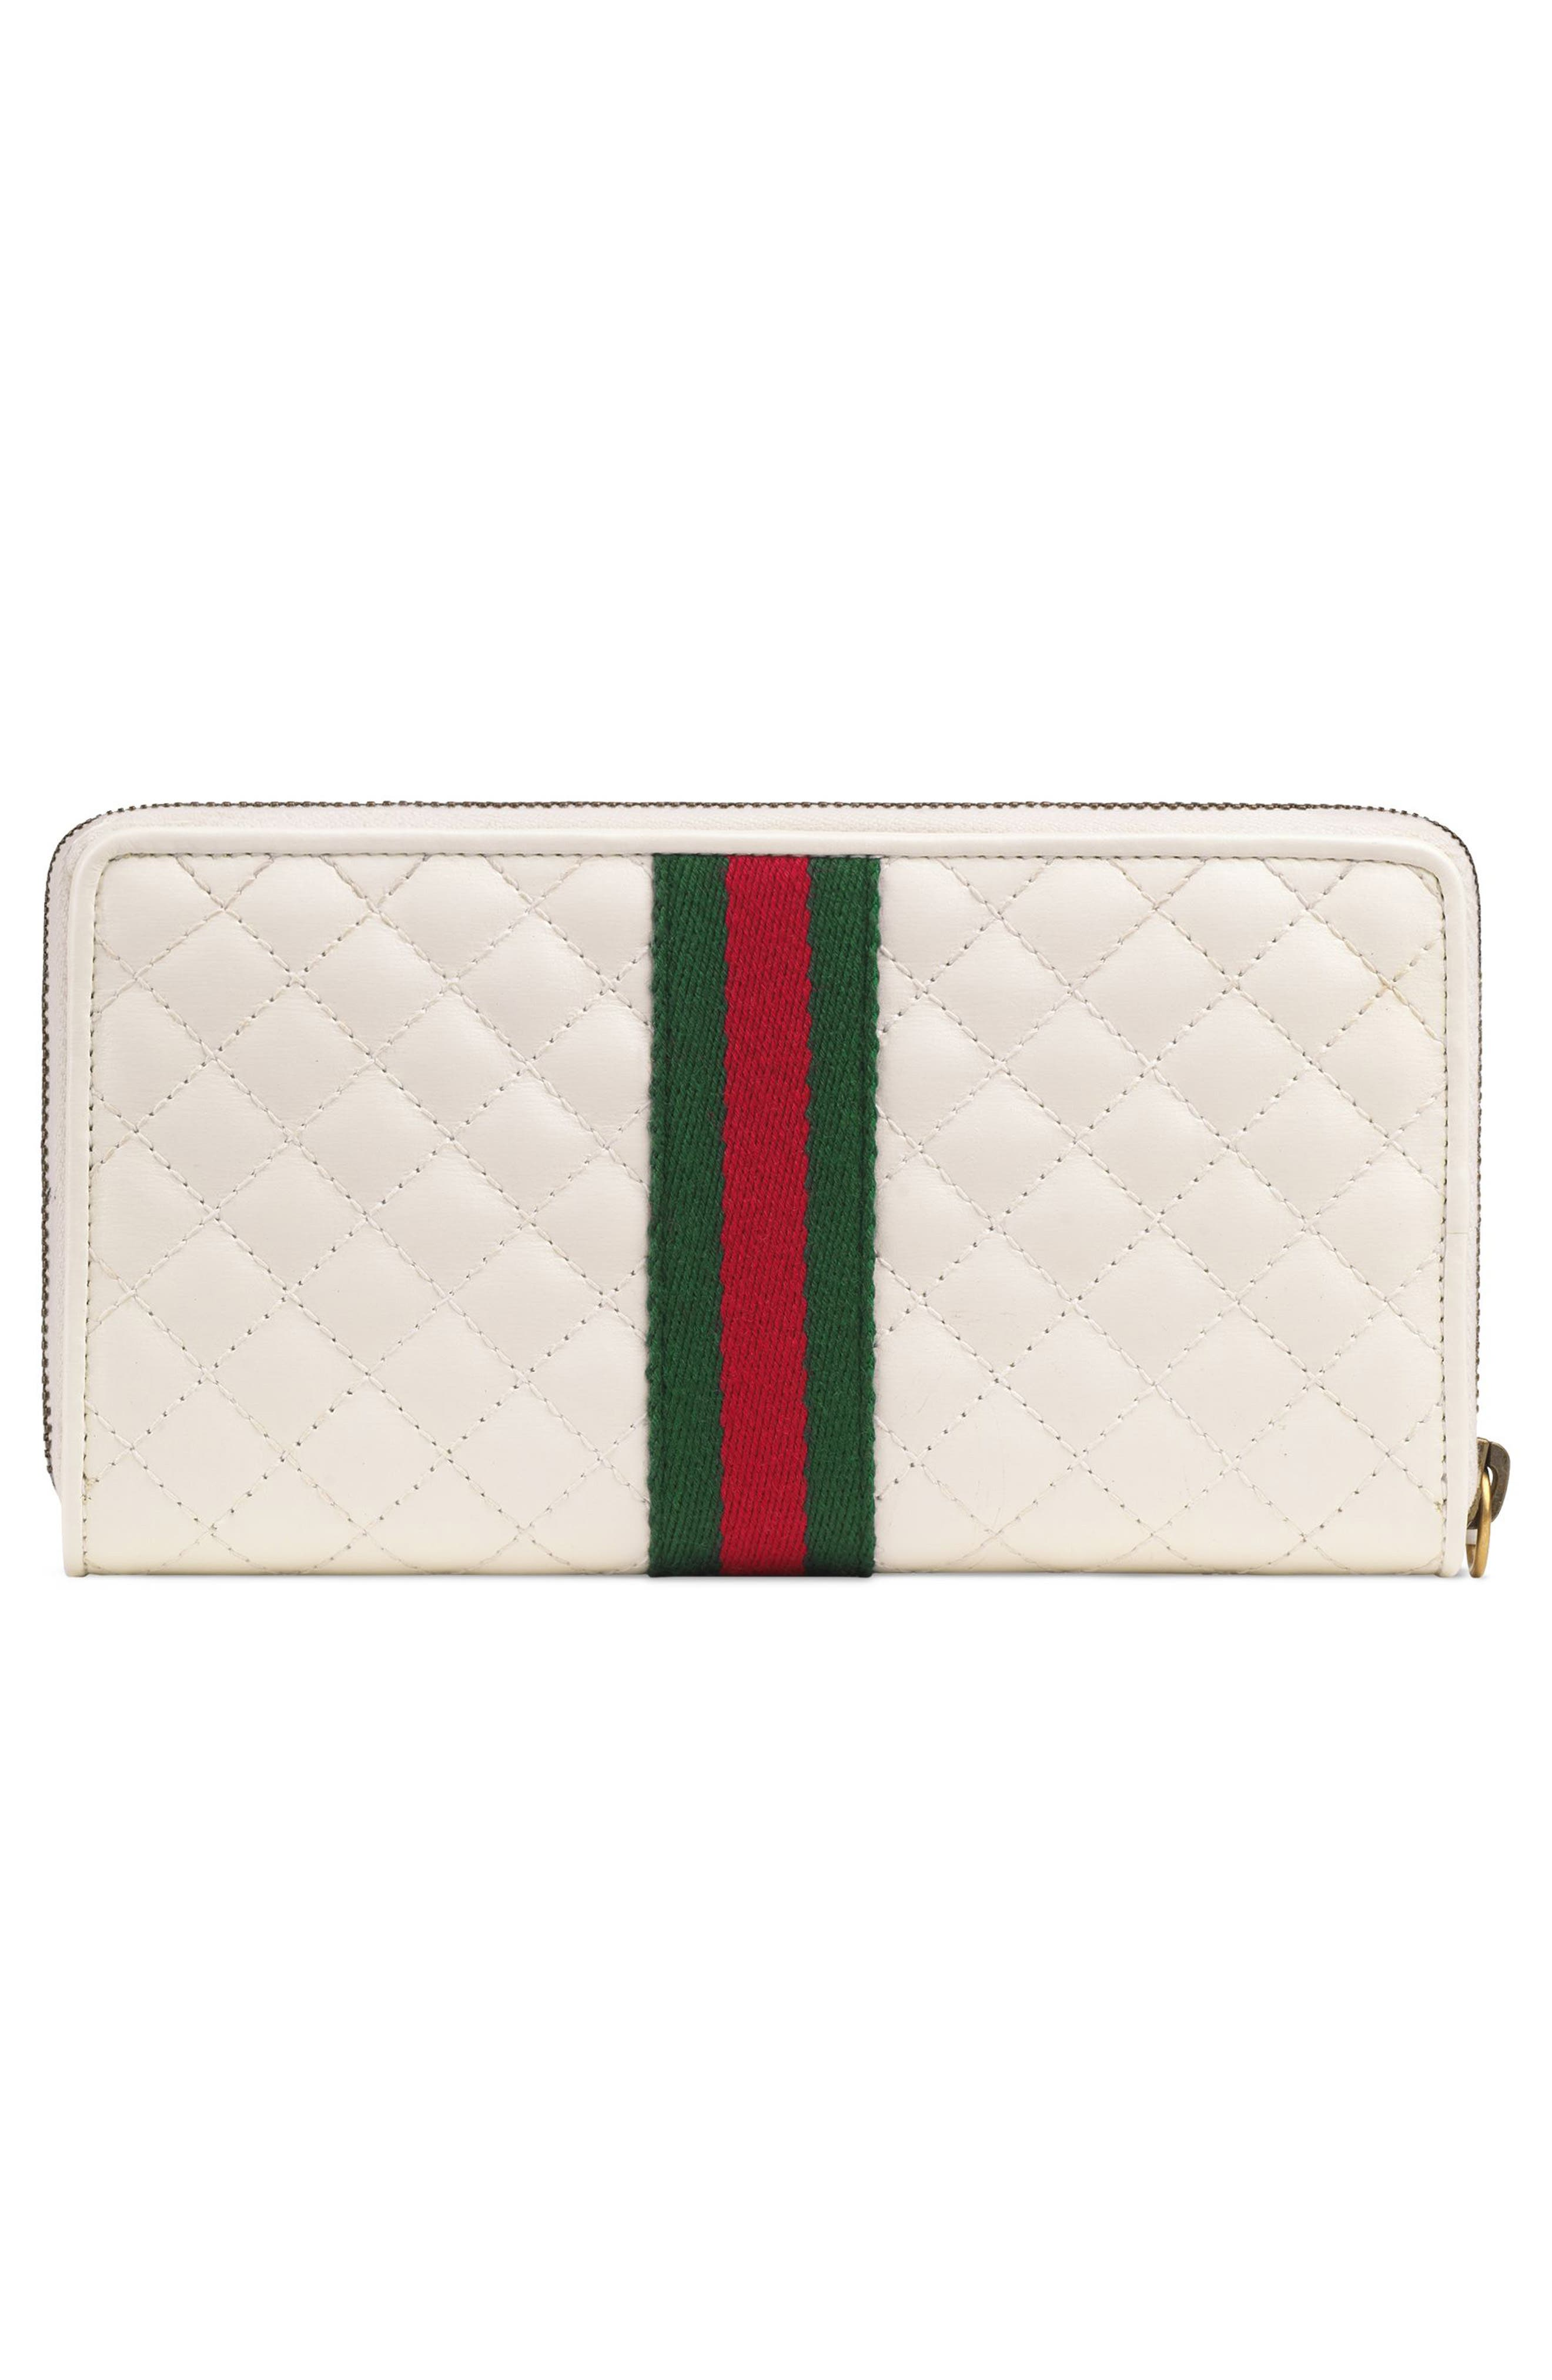 Quilted Leather Zip Around Continental Wallet,                             Alternate thumbnail 3, color,                             OFF WHITE/ VERT/ RED